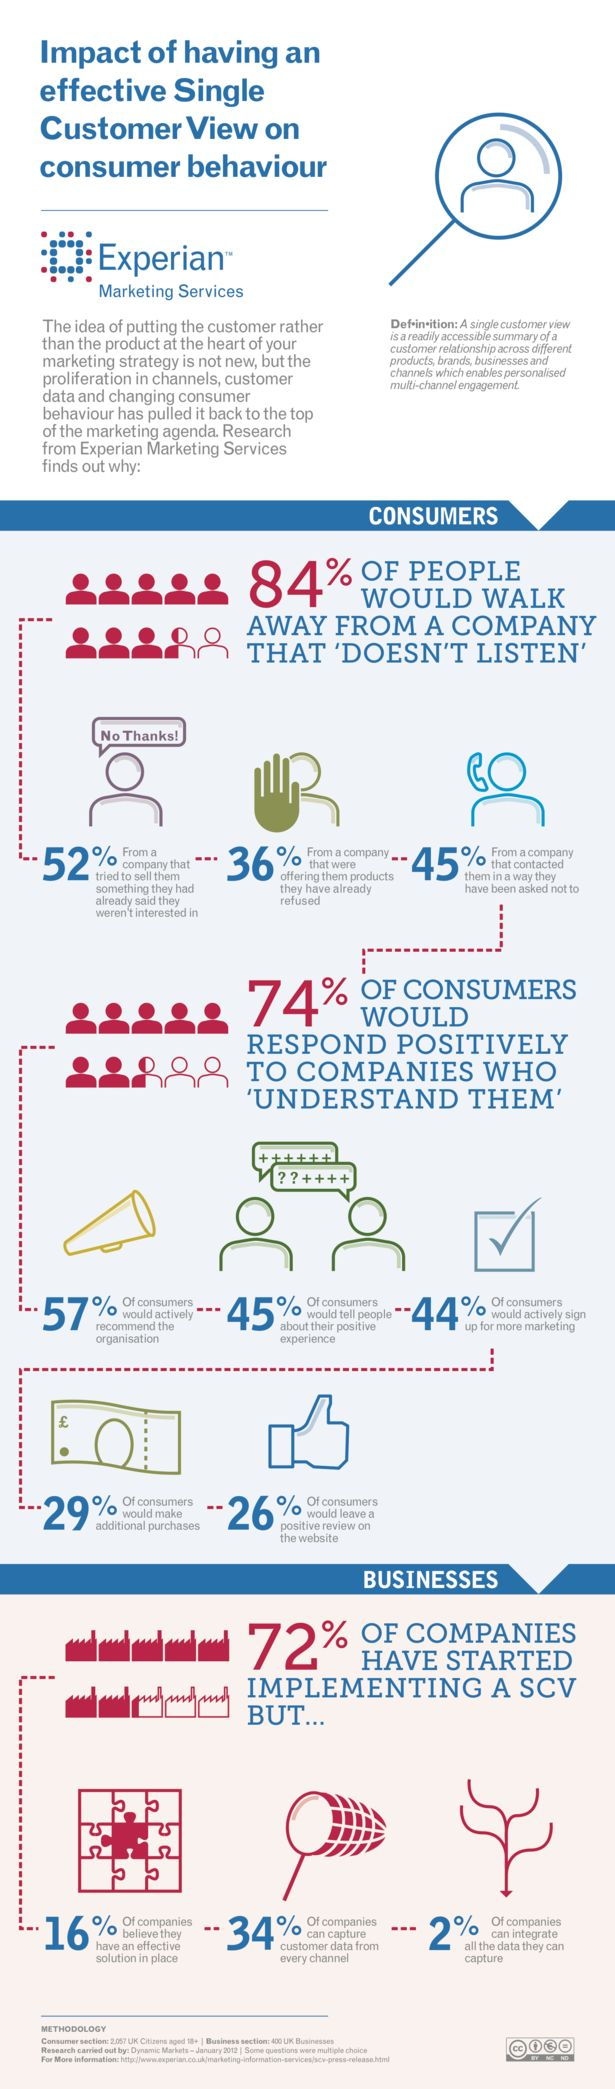 Impact of Having an Effective Single Customer View on Customer Behaviour. #eCRM #socialCRM #infographic